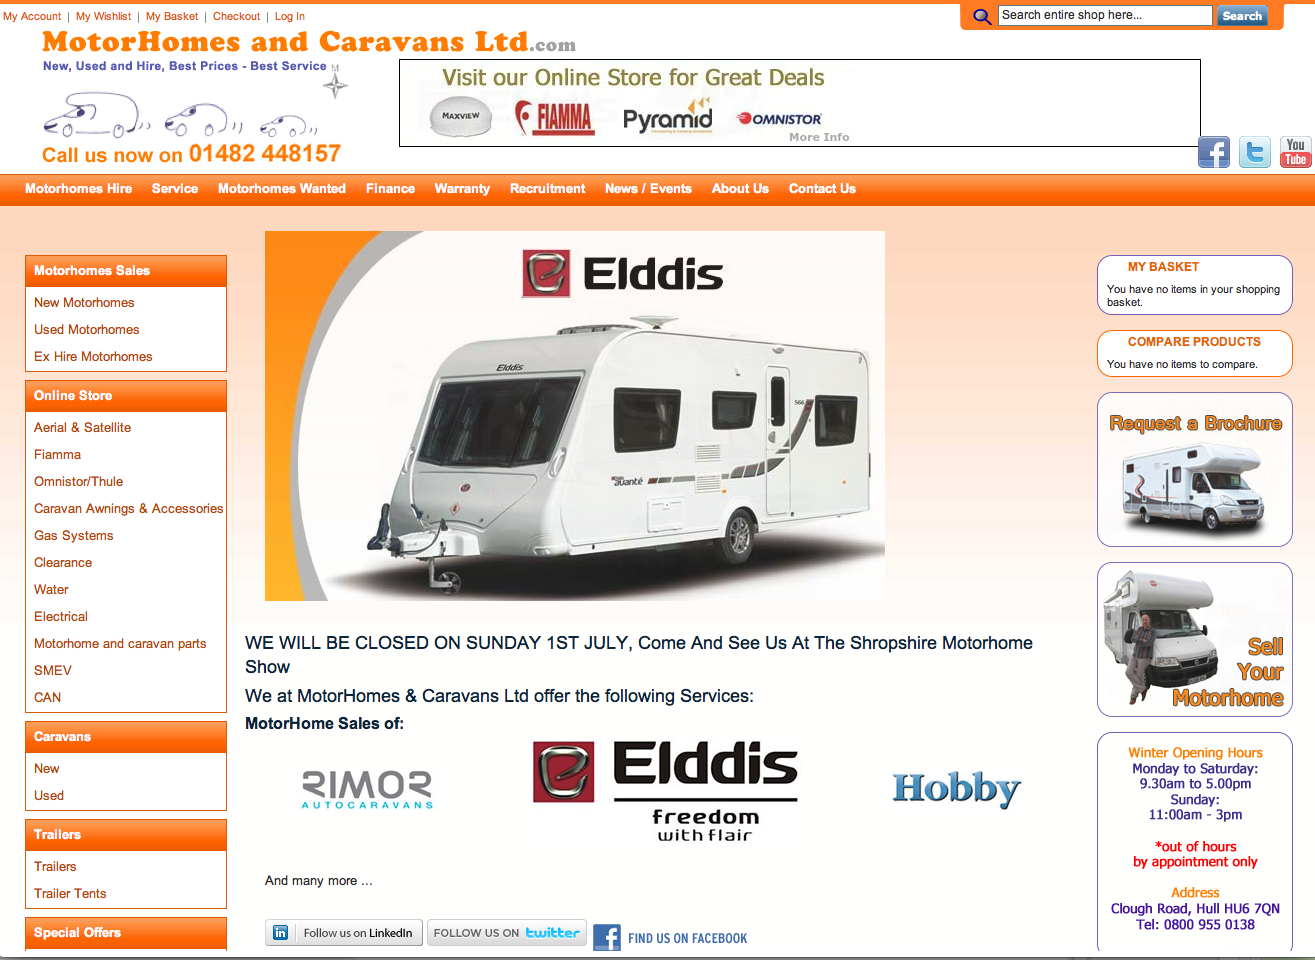 Motor Homes and Caravans Ltd.